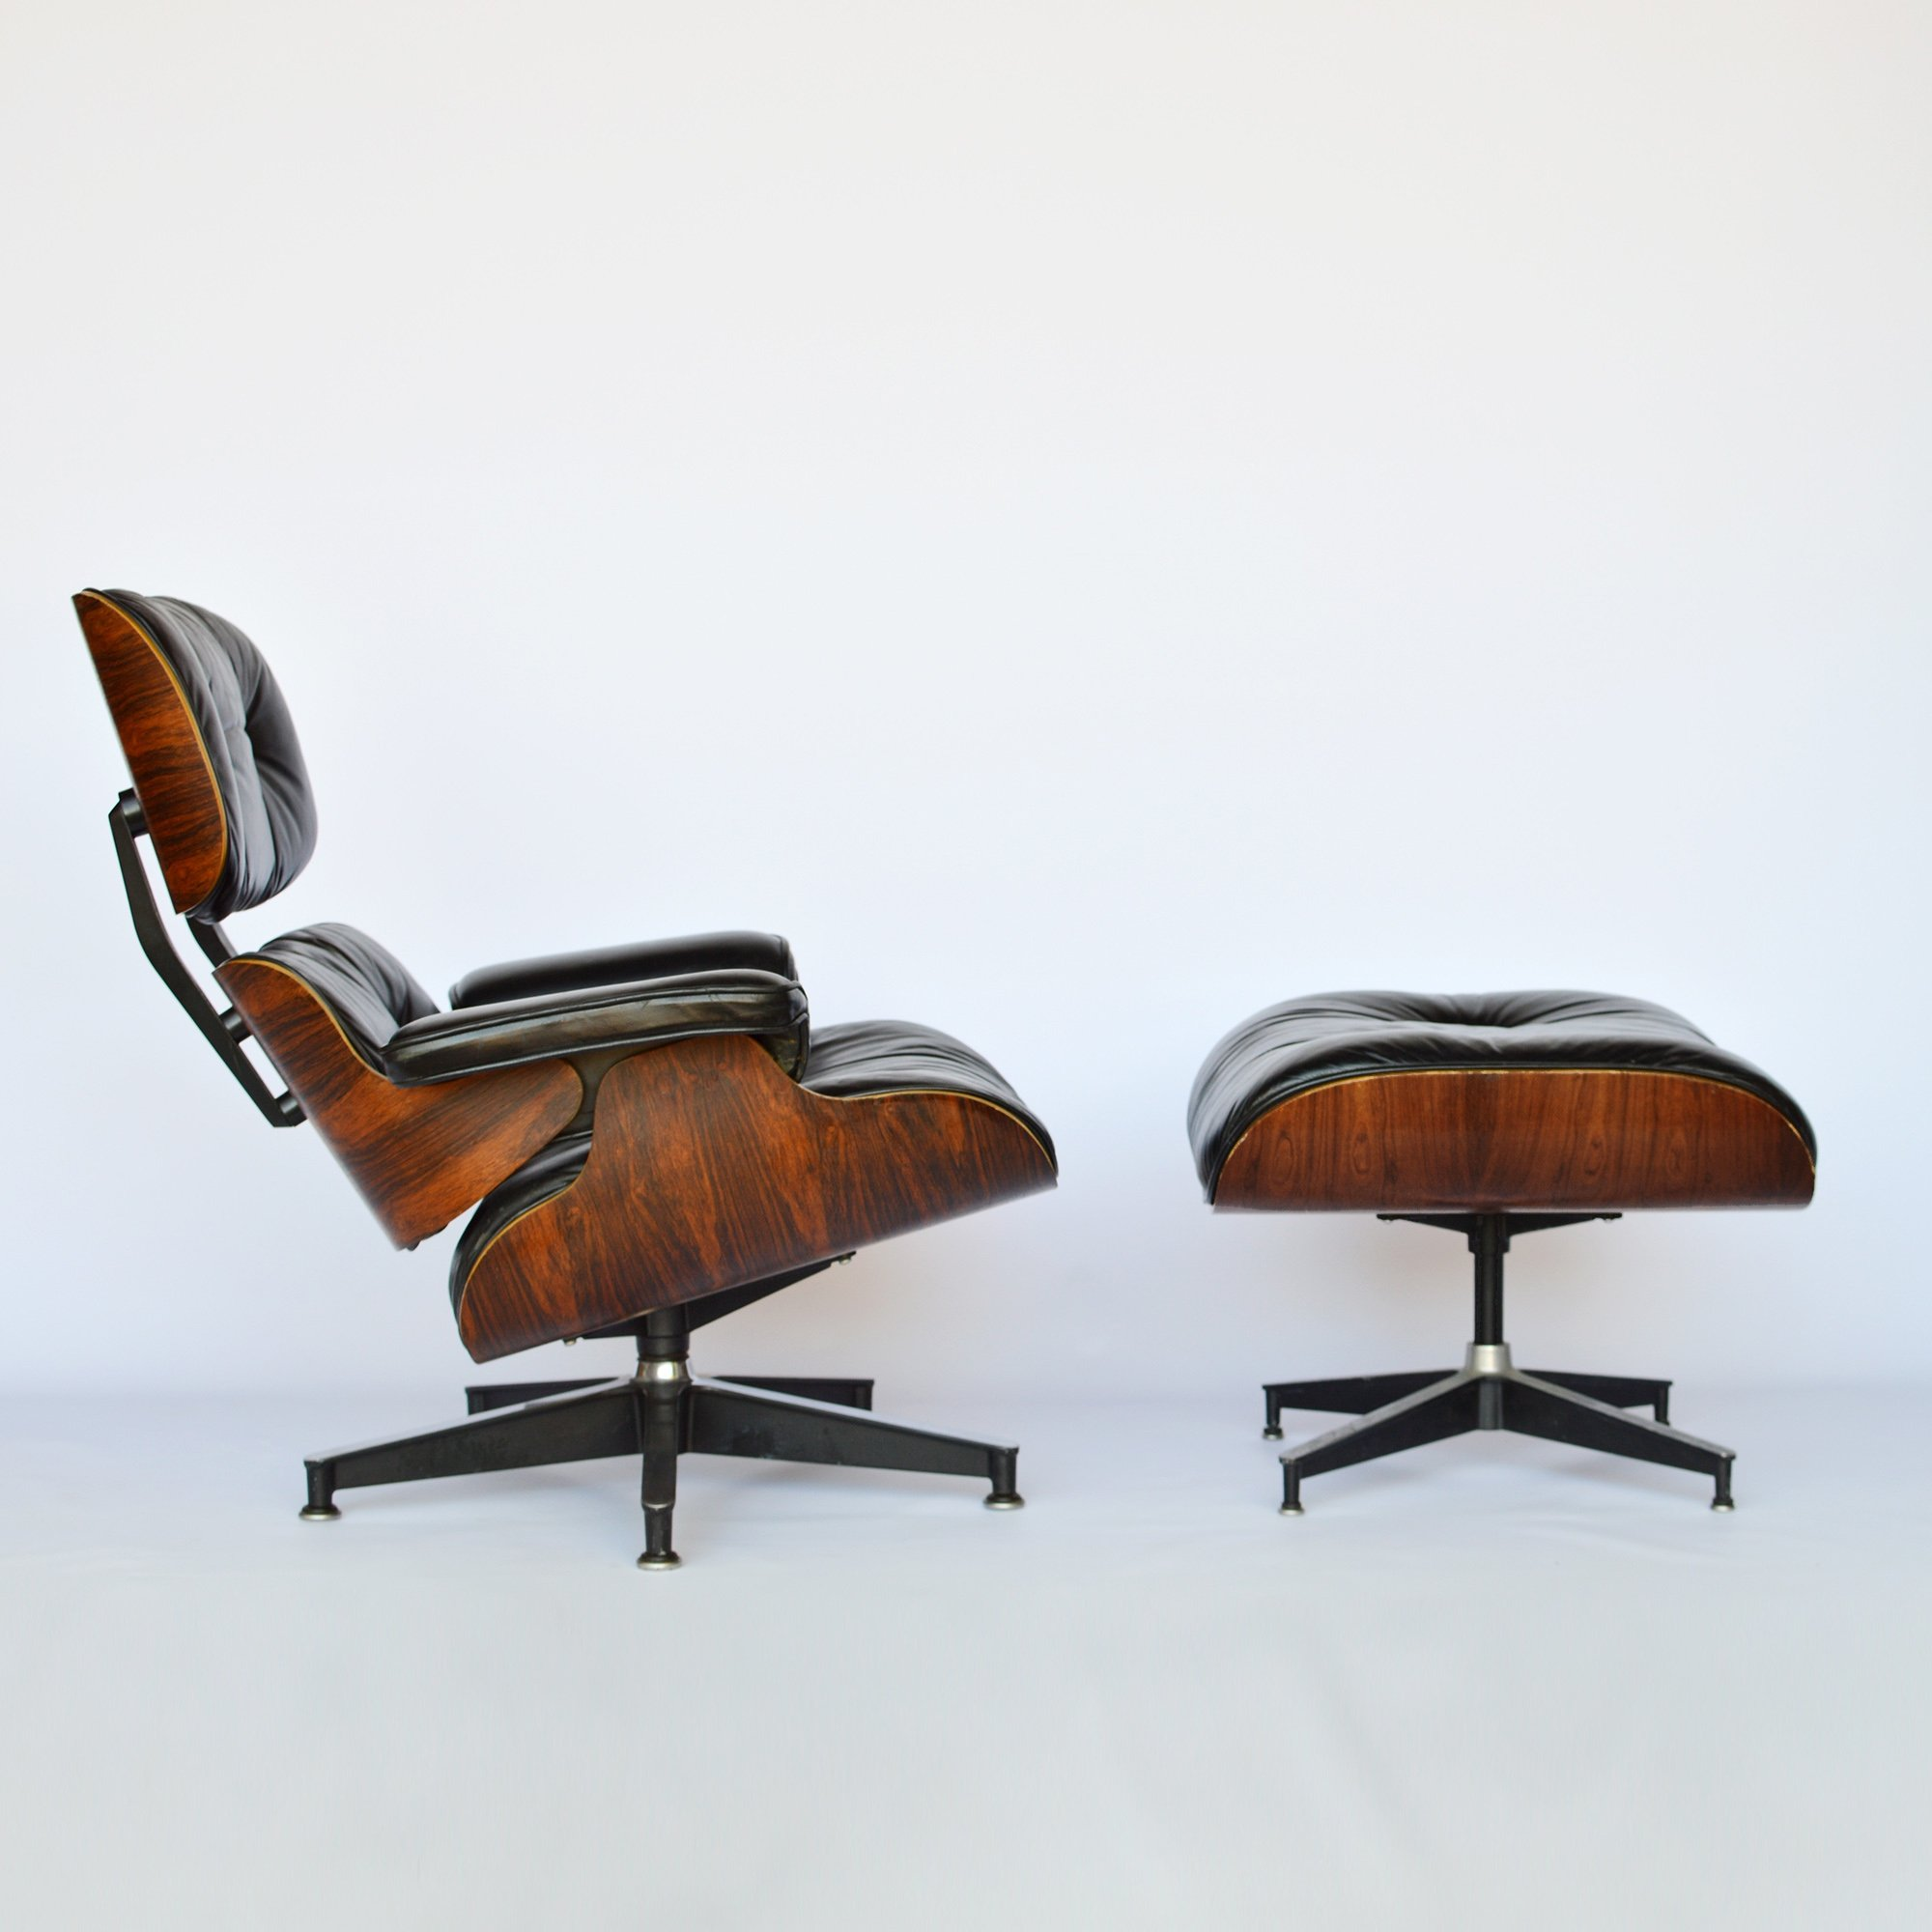 Eames Lounge Chair U0026 Ottoman By Herman Miller In Rosewood U0026 Black Leather,  1979